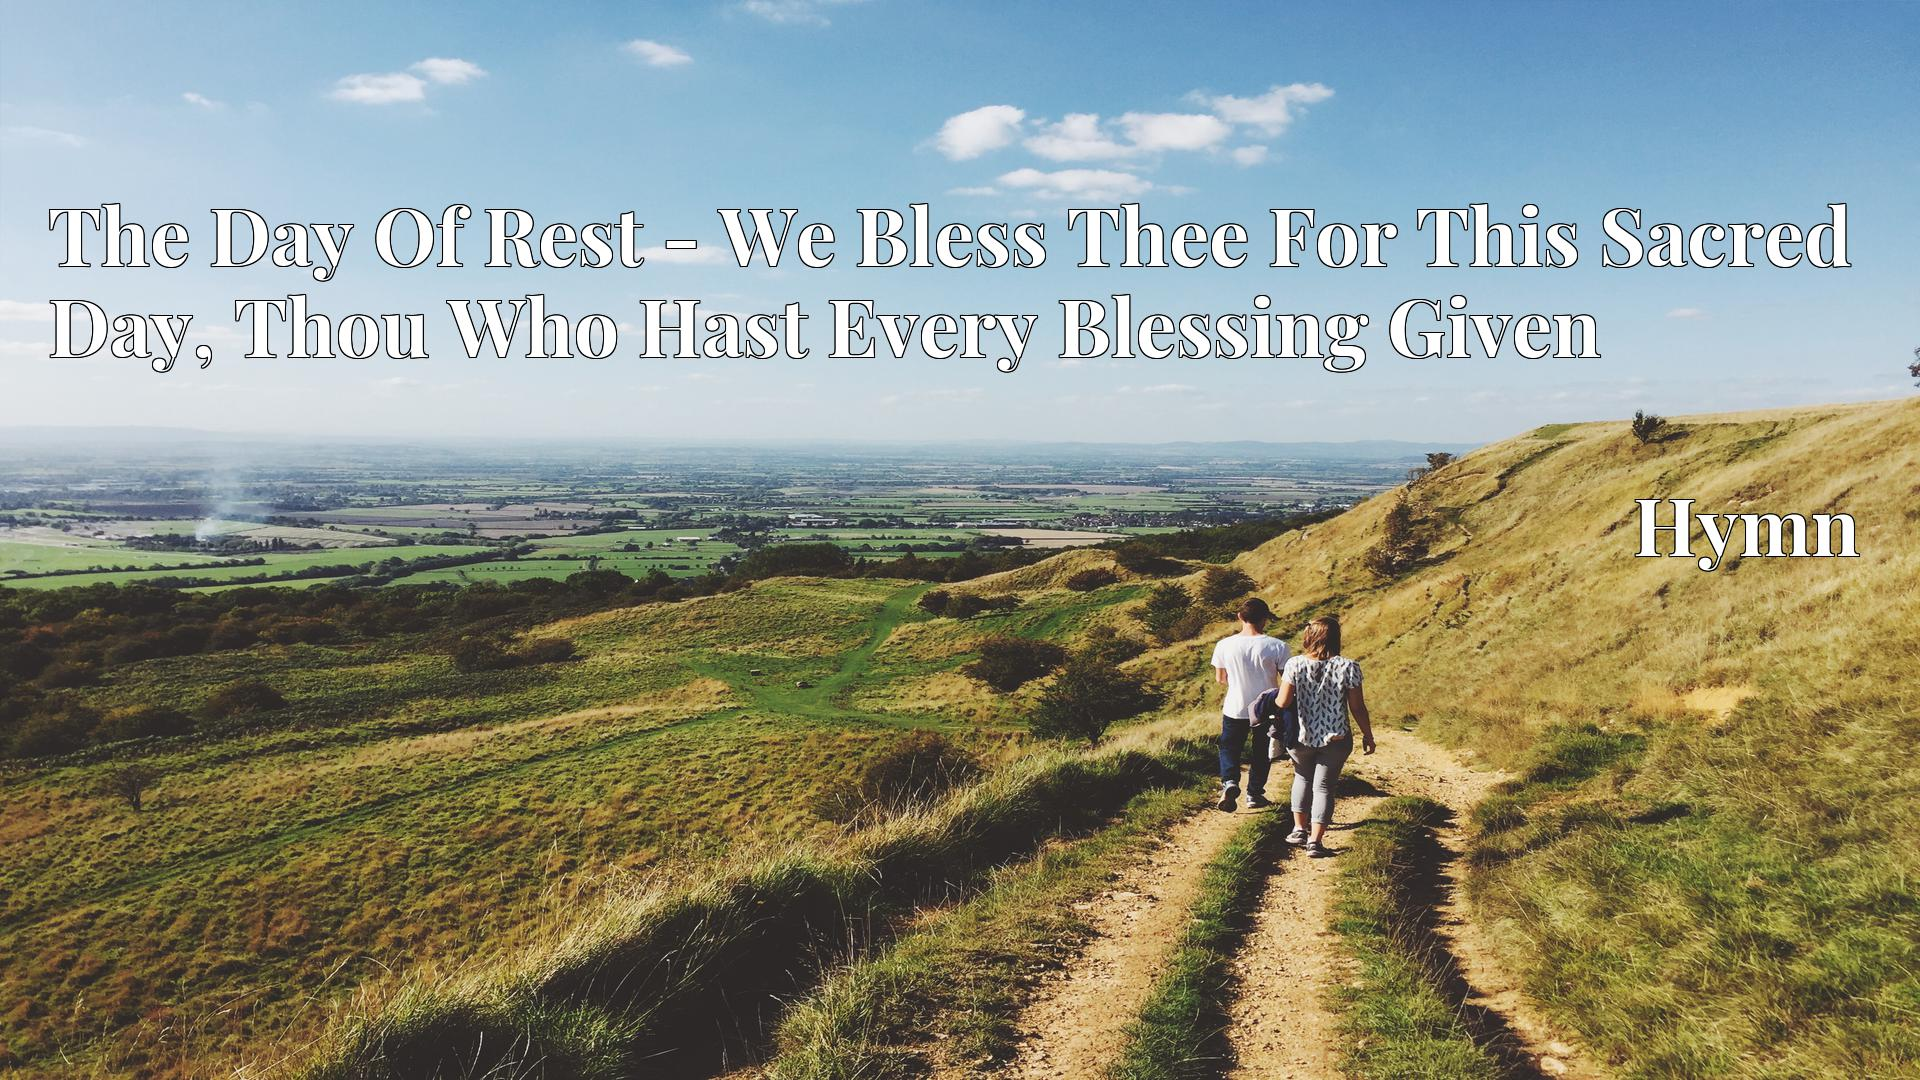 The Day Of Rest - We Bless Thee For This Sacred Day, Thou Who Hast Every Blessing Given - Hymn